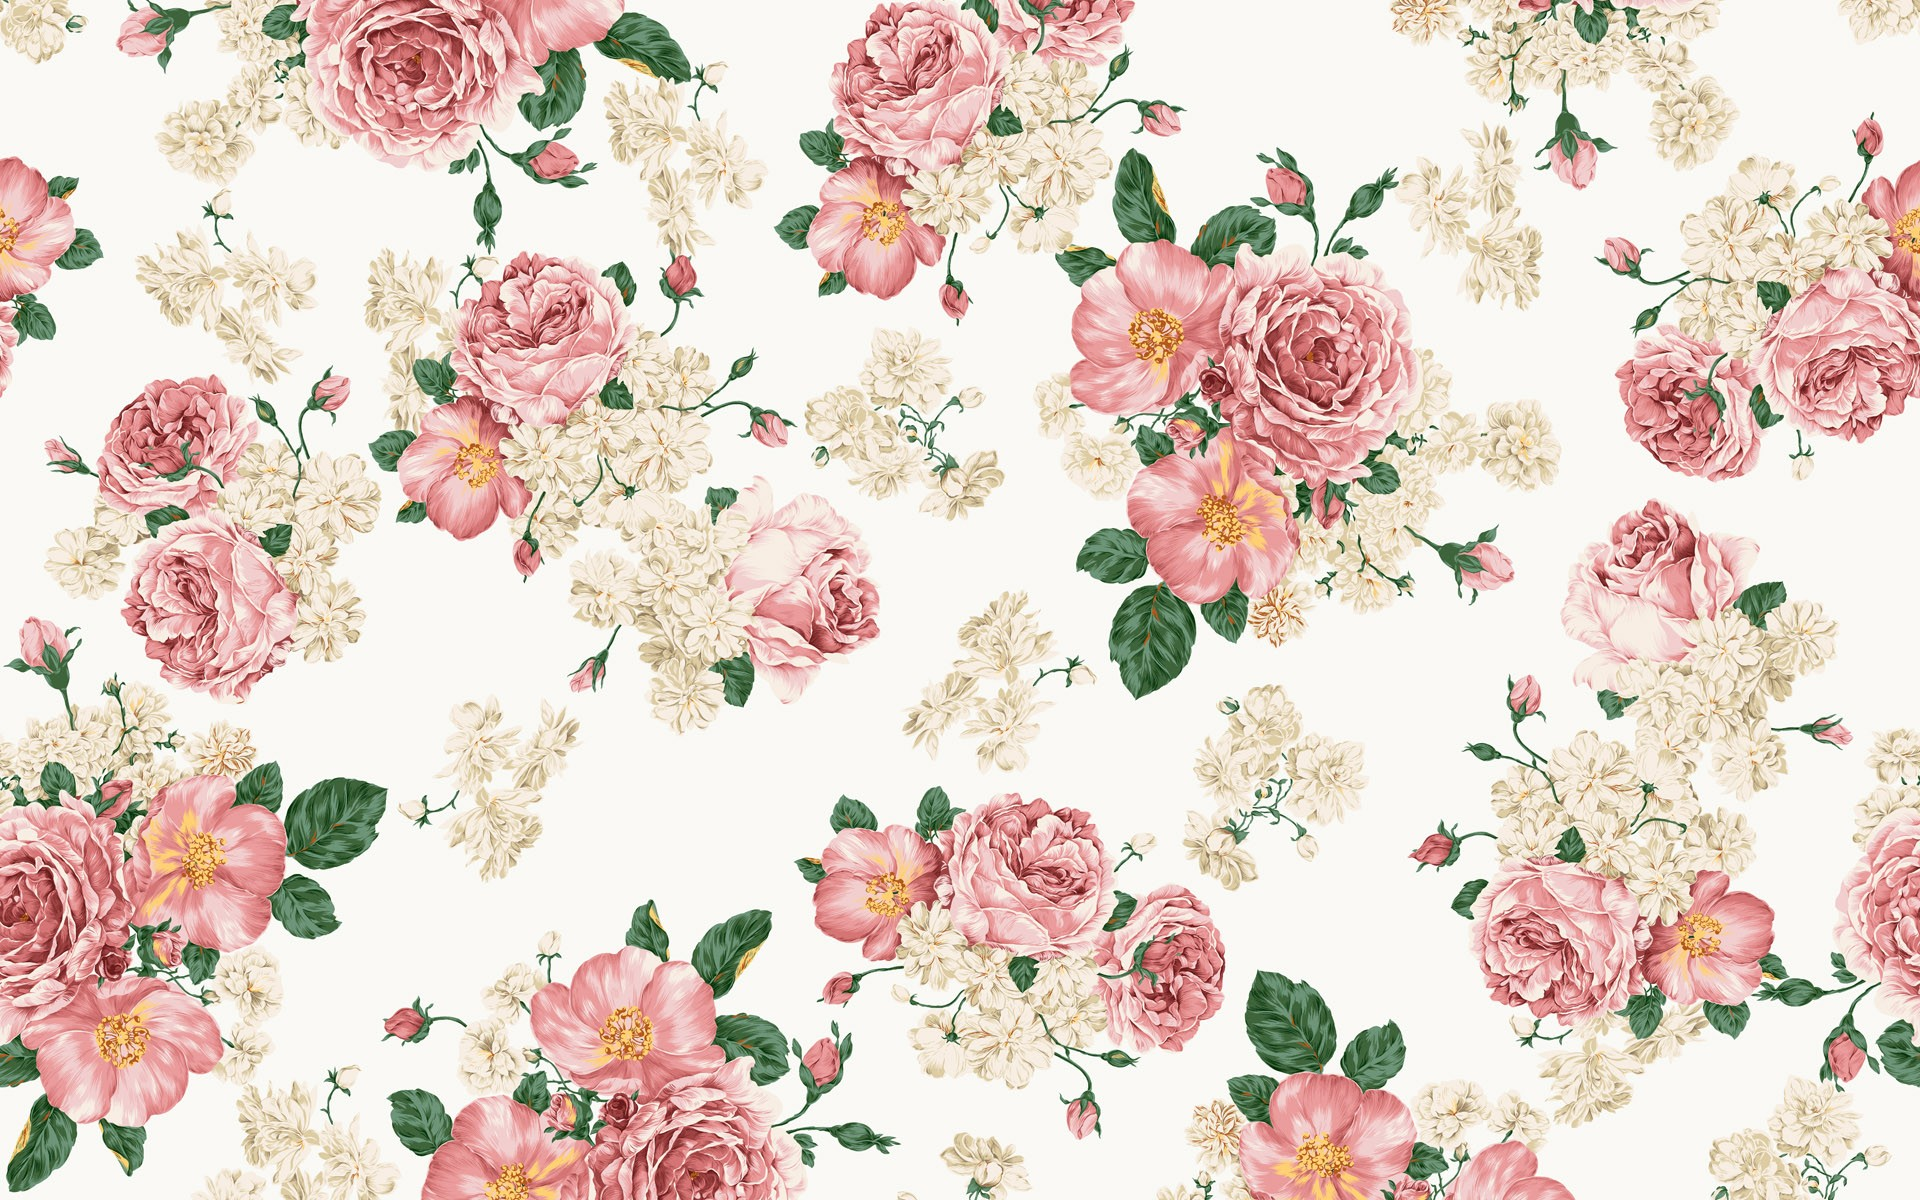 Floral Background Tumblr Hd Wallpaper